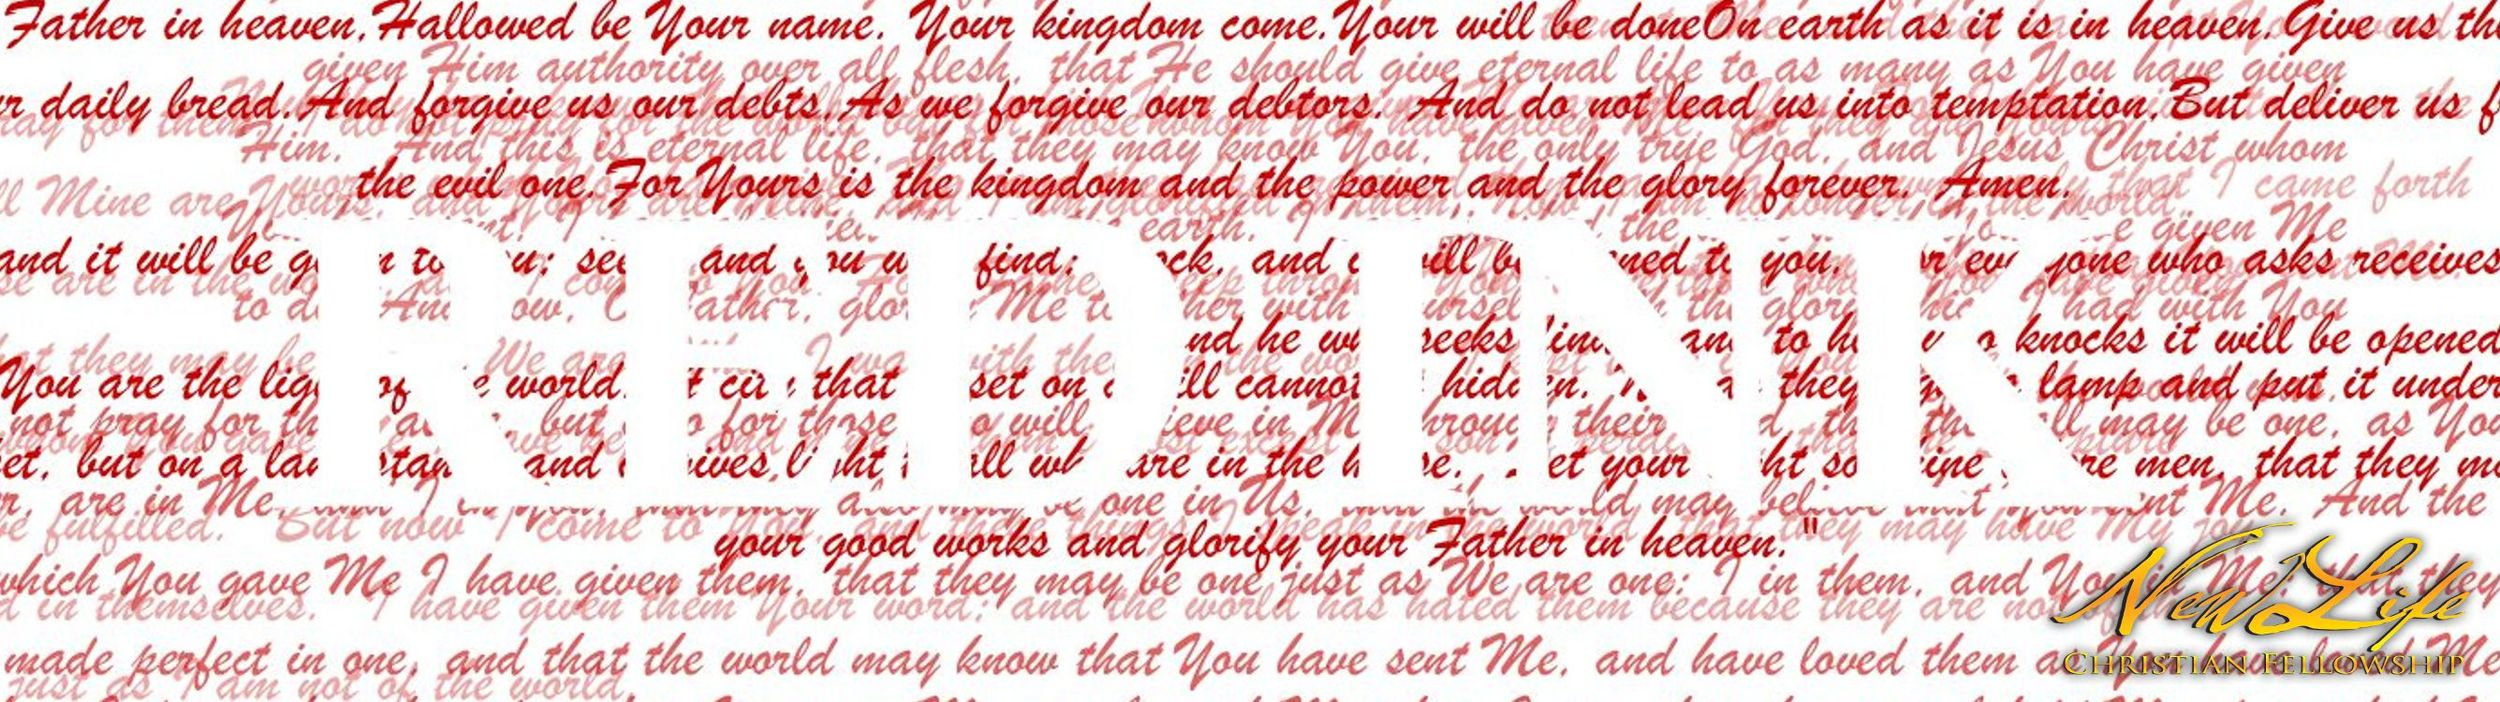 A women's bible study. Join us as we wait on the Lord and study the Red Ink in the Bible and find out how the words of Jesus are still relevent to our lives today. Tuesday mornings at 10am in the home of Mary Bondi. Call the church office for the address. 435-843-7430